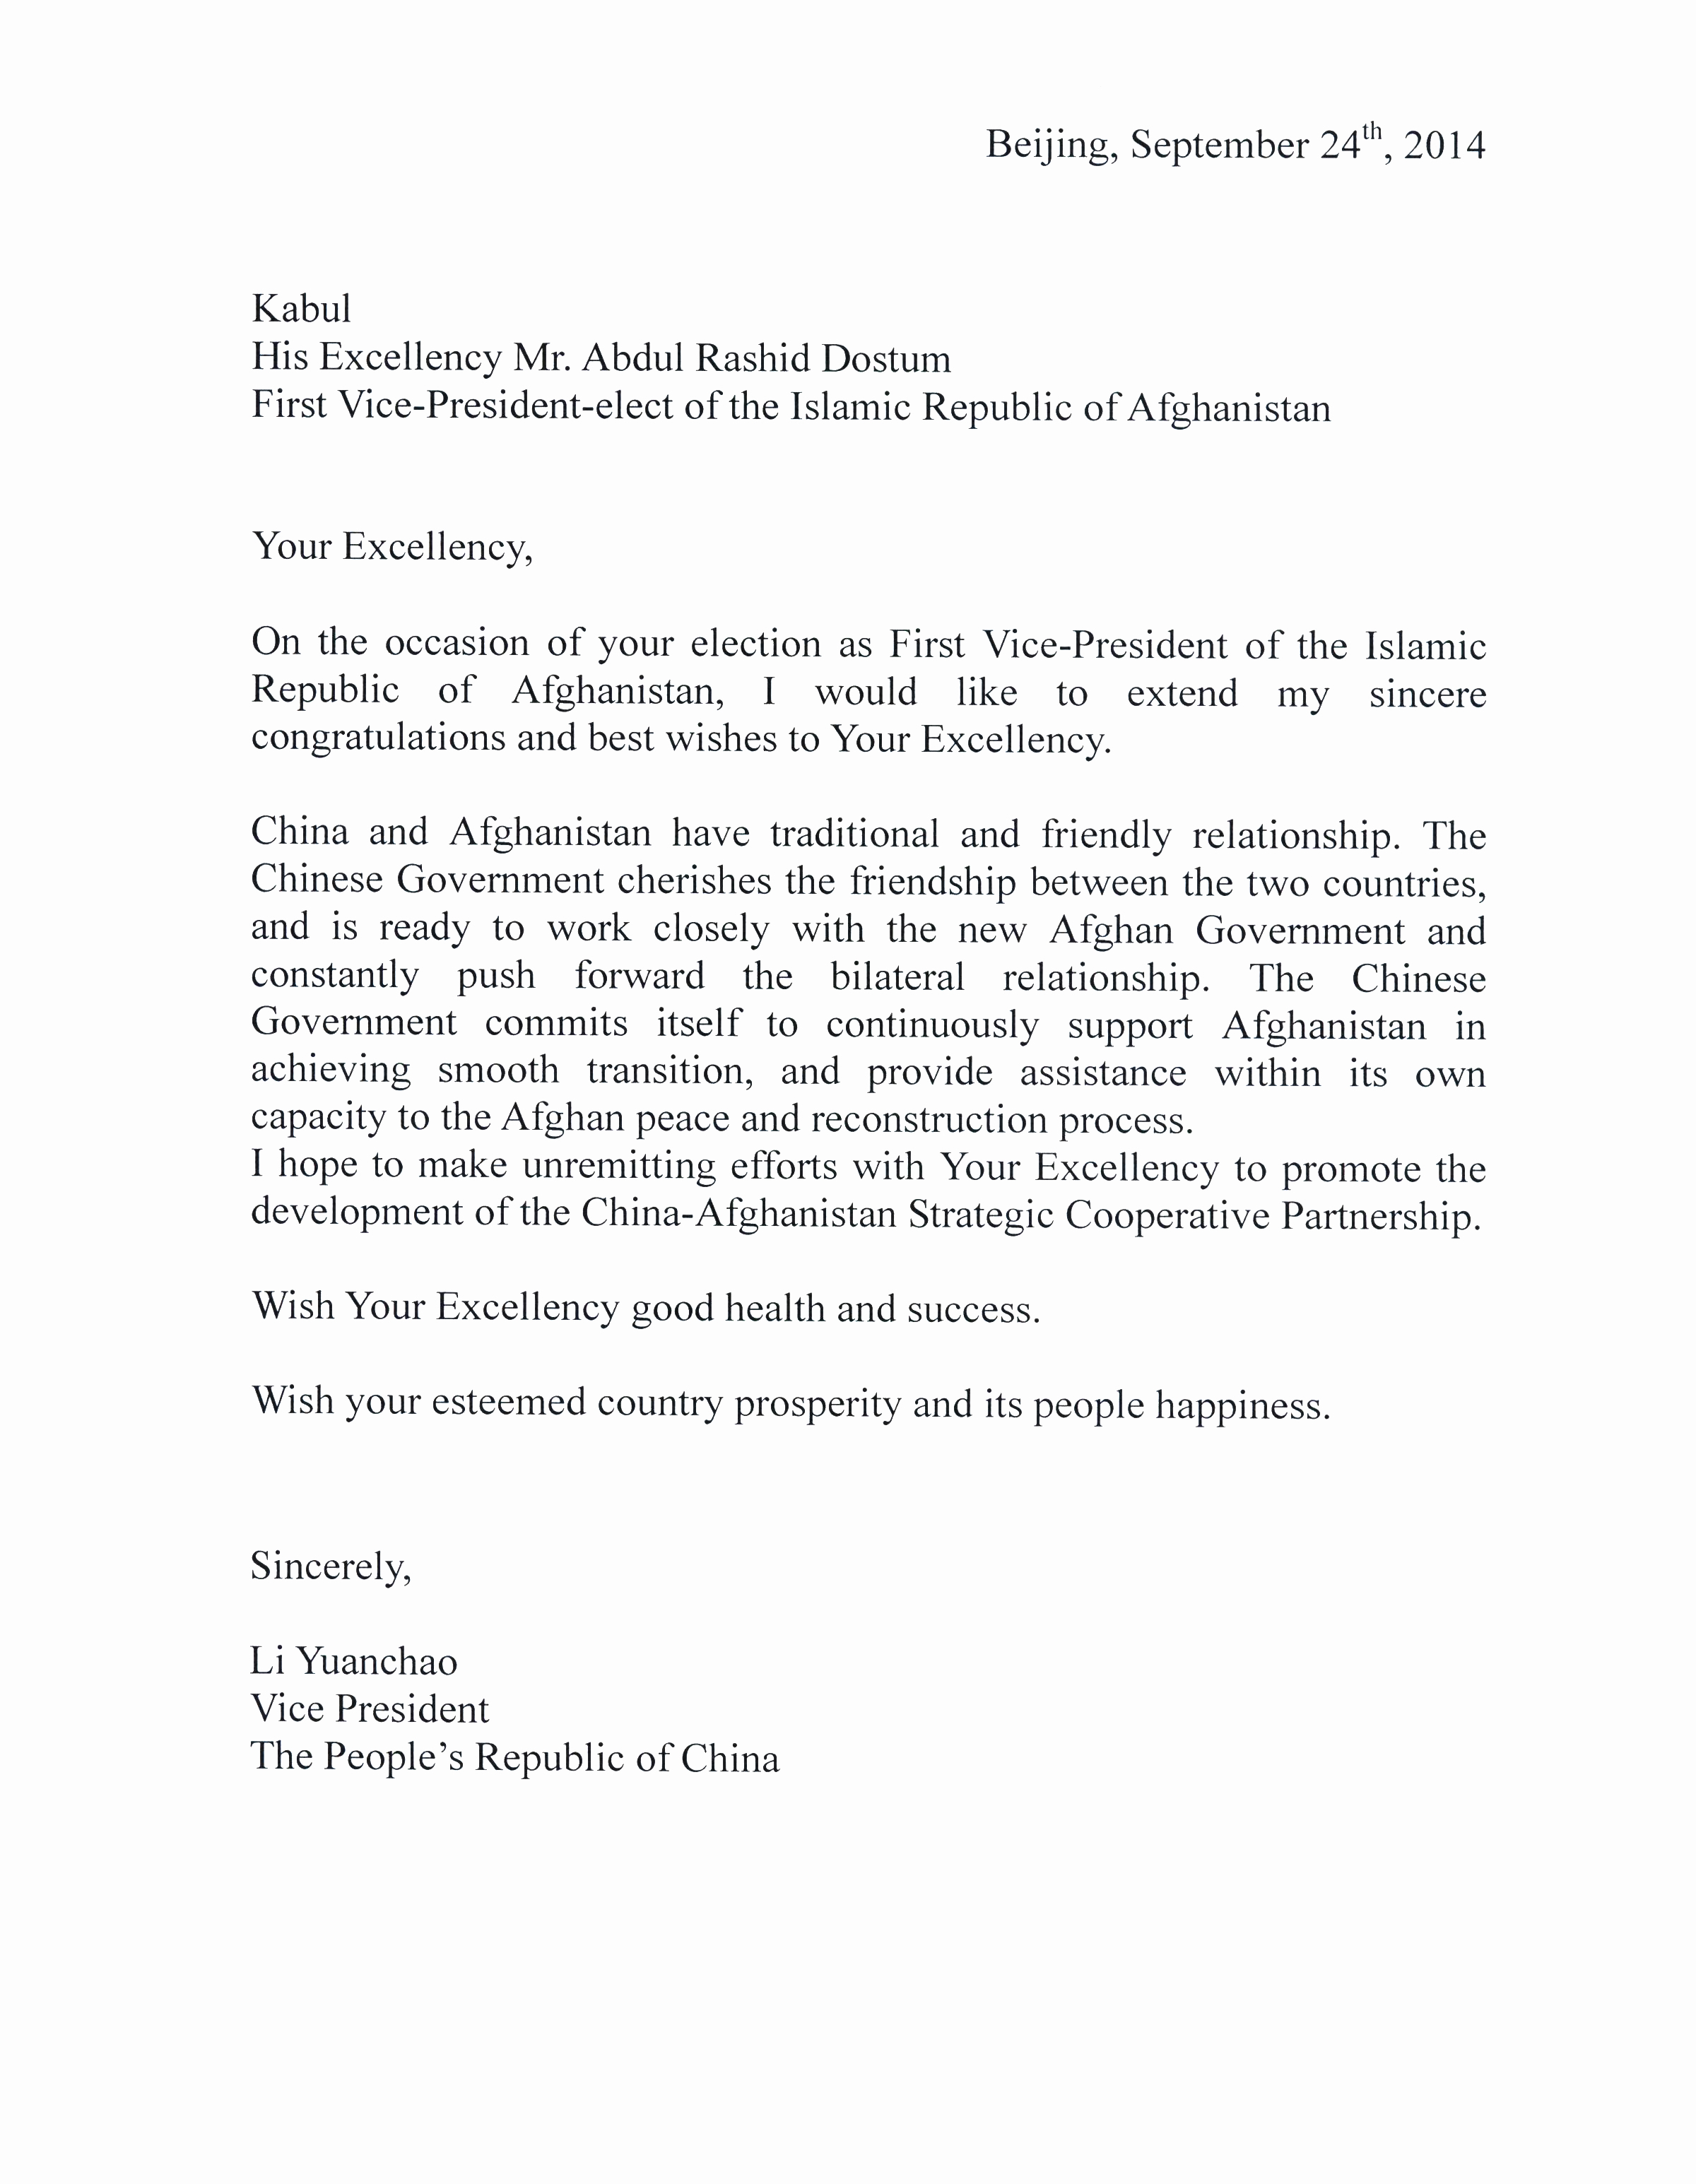 Chinese vice president li yuanchao sends letters of congratulation chinese vice president li yuanchao sends letters of congratulation to abdul rashid dostum and mohammad sarwar danish for their elections as vice president thecheapjerseys Choice Image